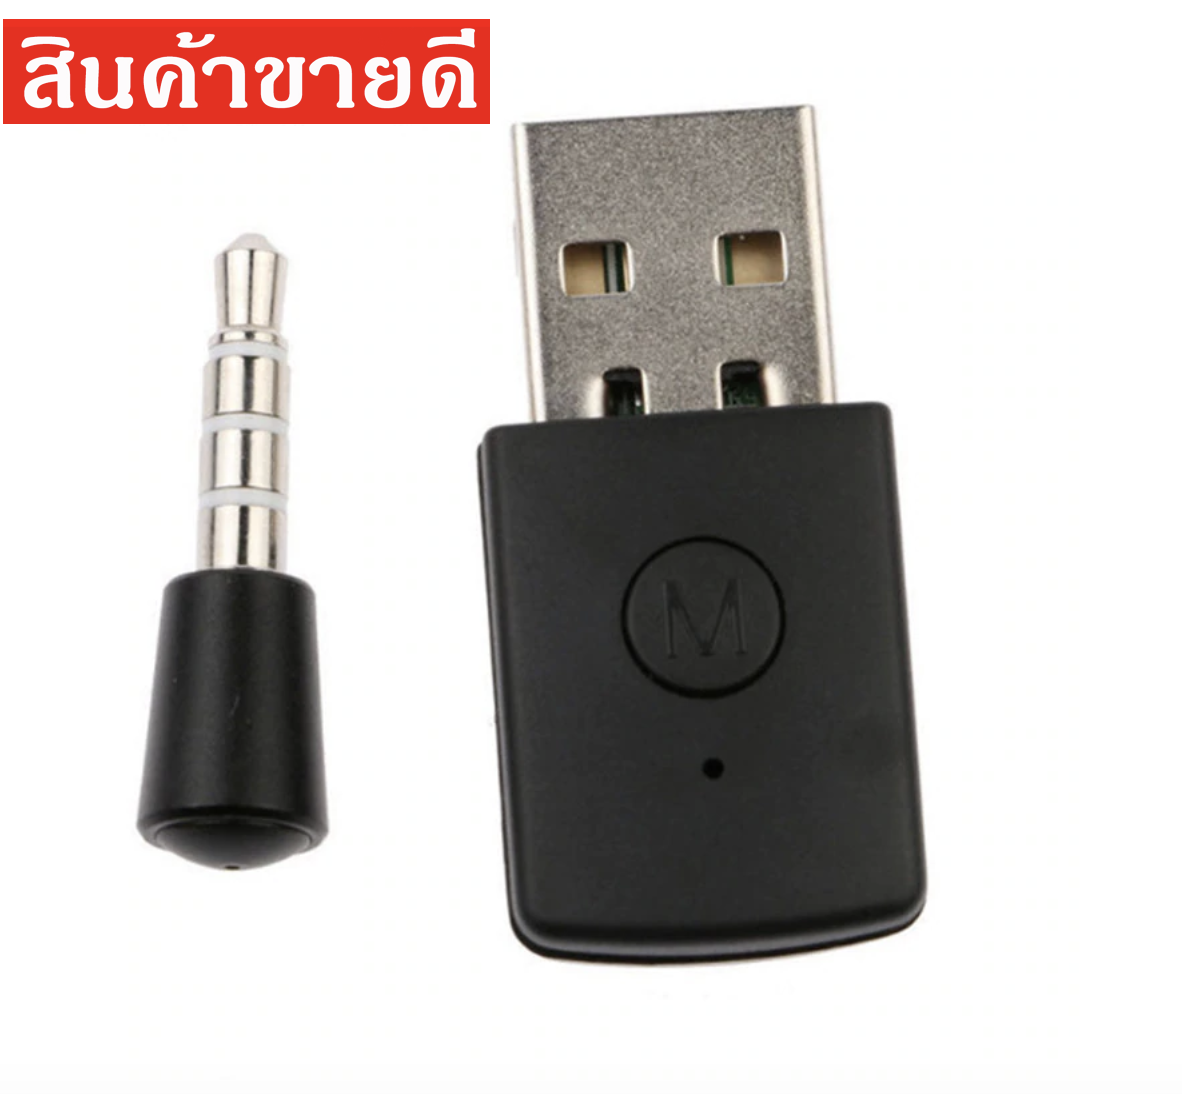 Bluetooth Dongle Usb Adapter For Ps4 3.5mm Bluetooth 4.0+edr Usb Adapter For Ps4 Stable Performance Bluetooth Earphone.